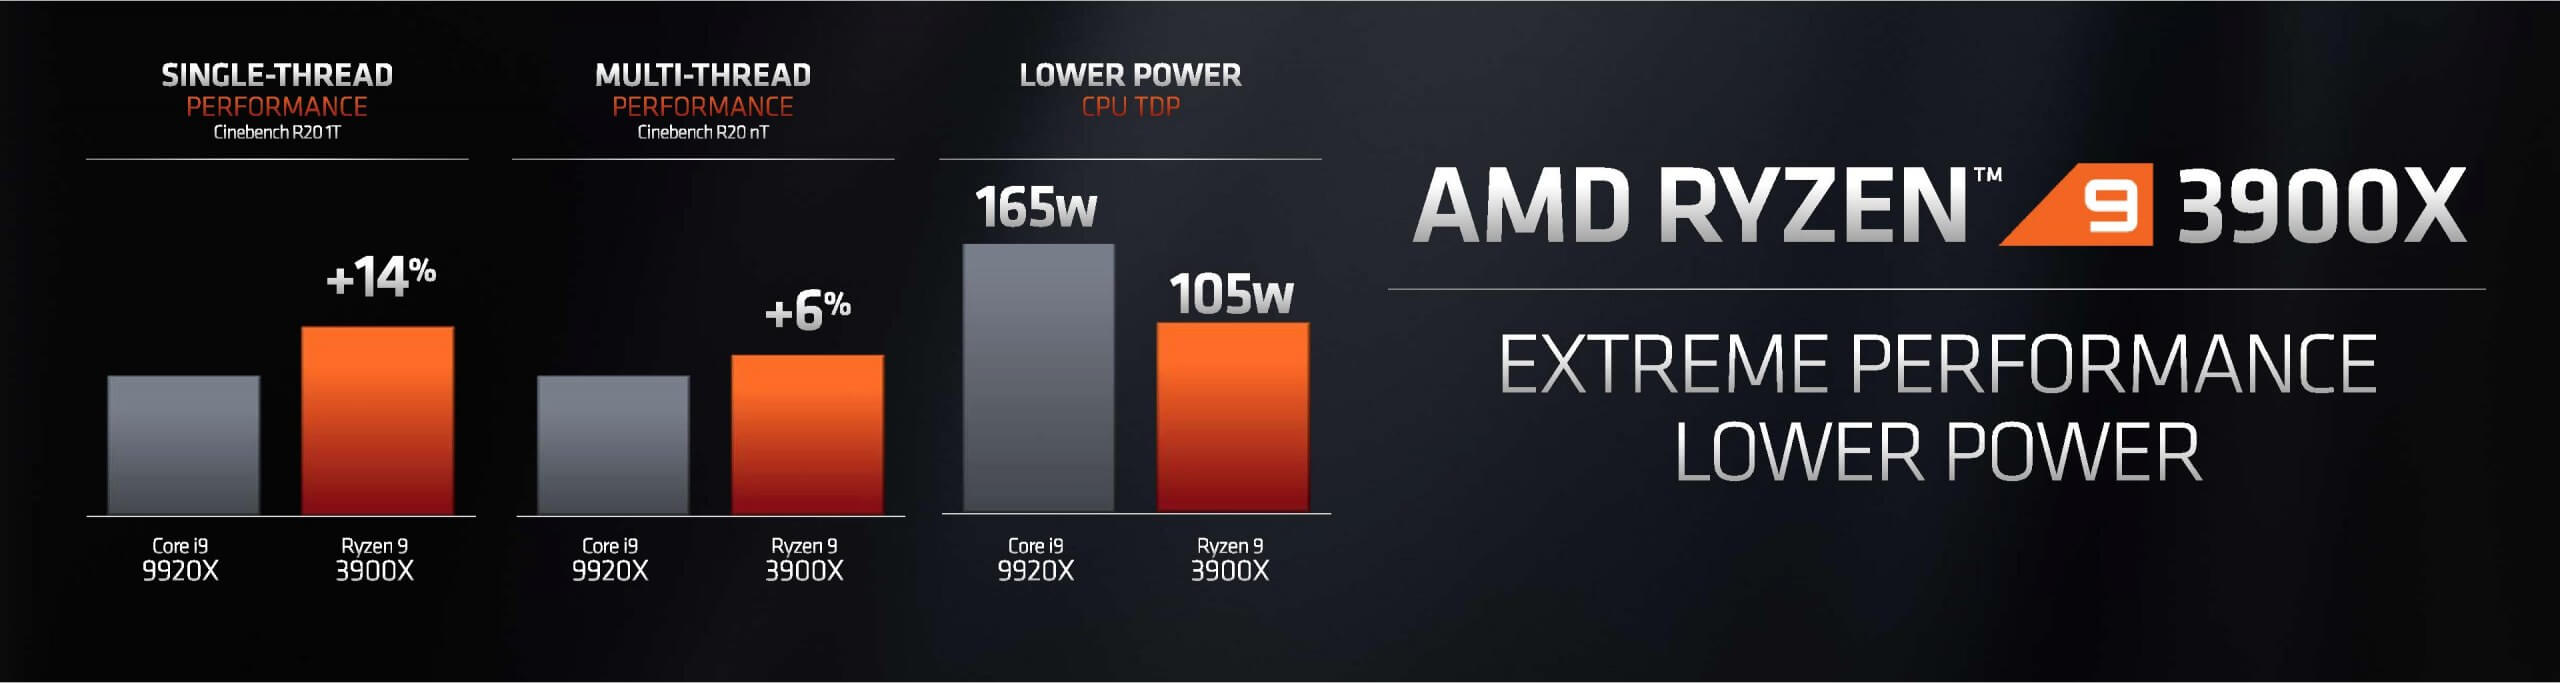 AMD announces Ryzen 9 3900X flagship desktop CPU, Ryzen 7 3800X